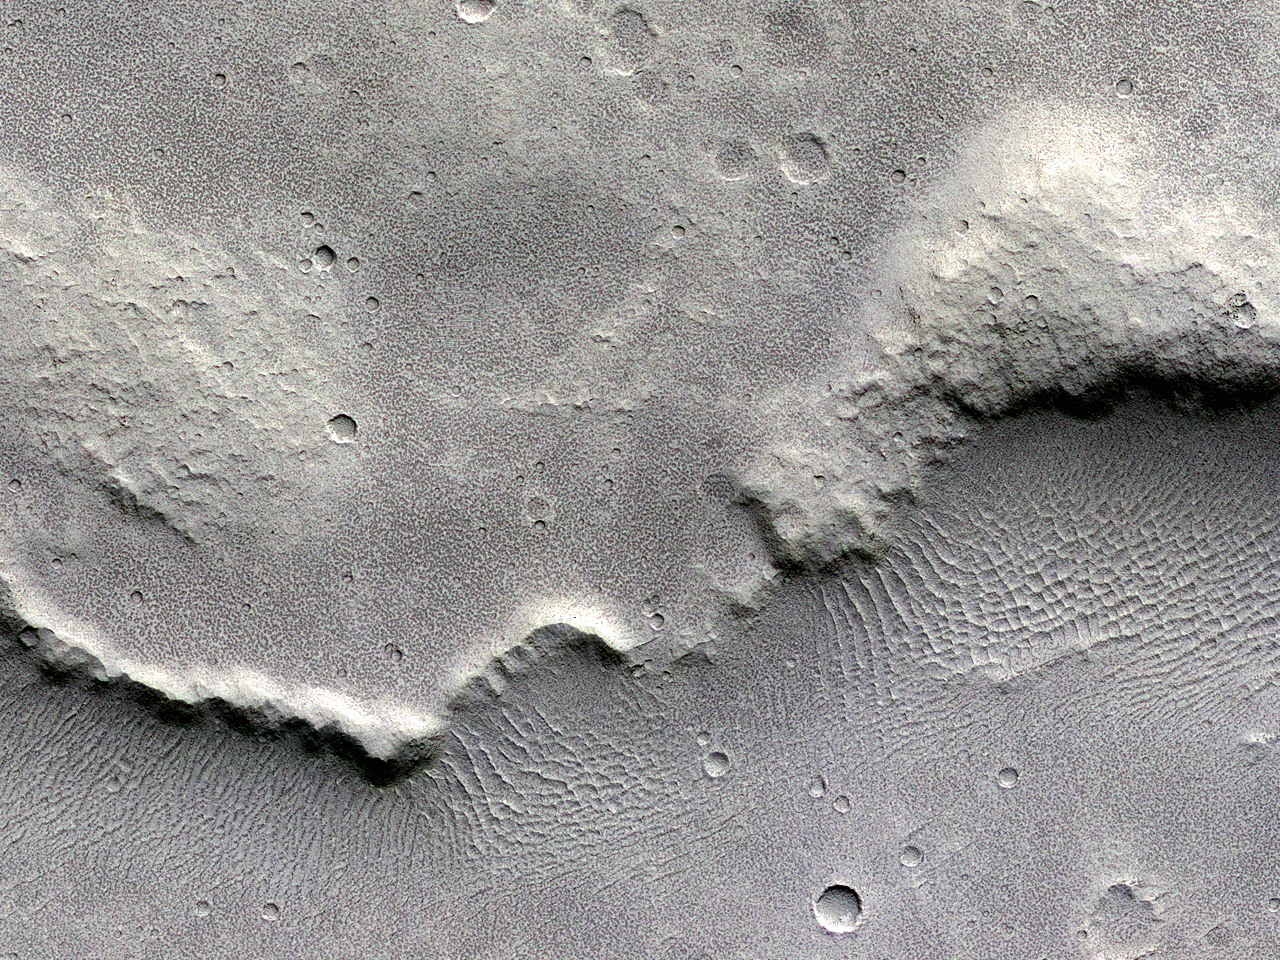 Wrinkles and Ridges in Lunae Planum